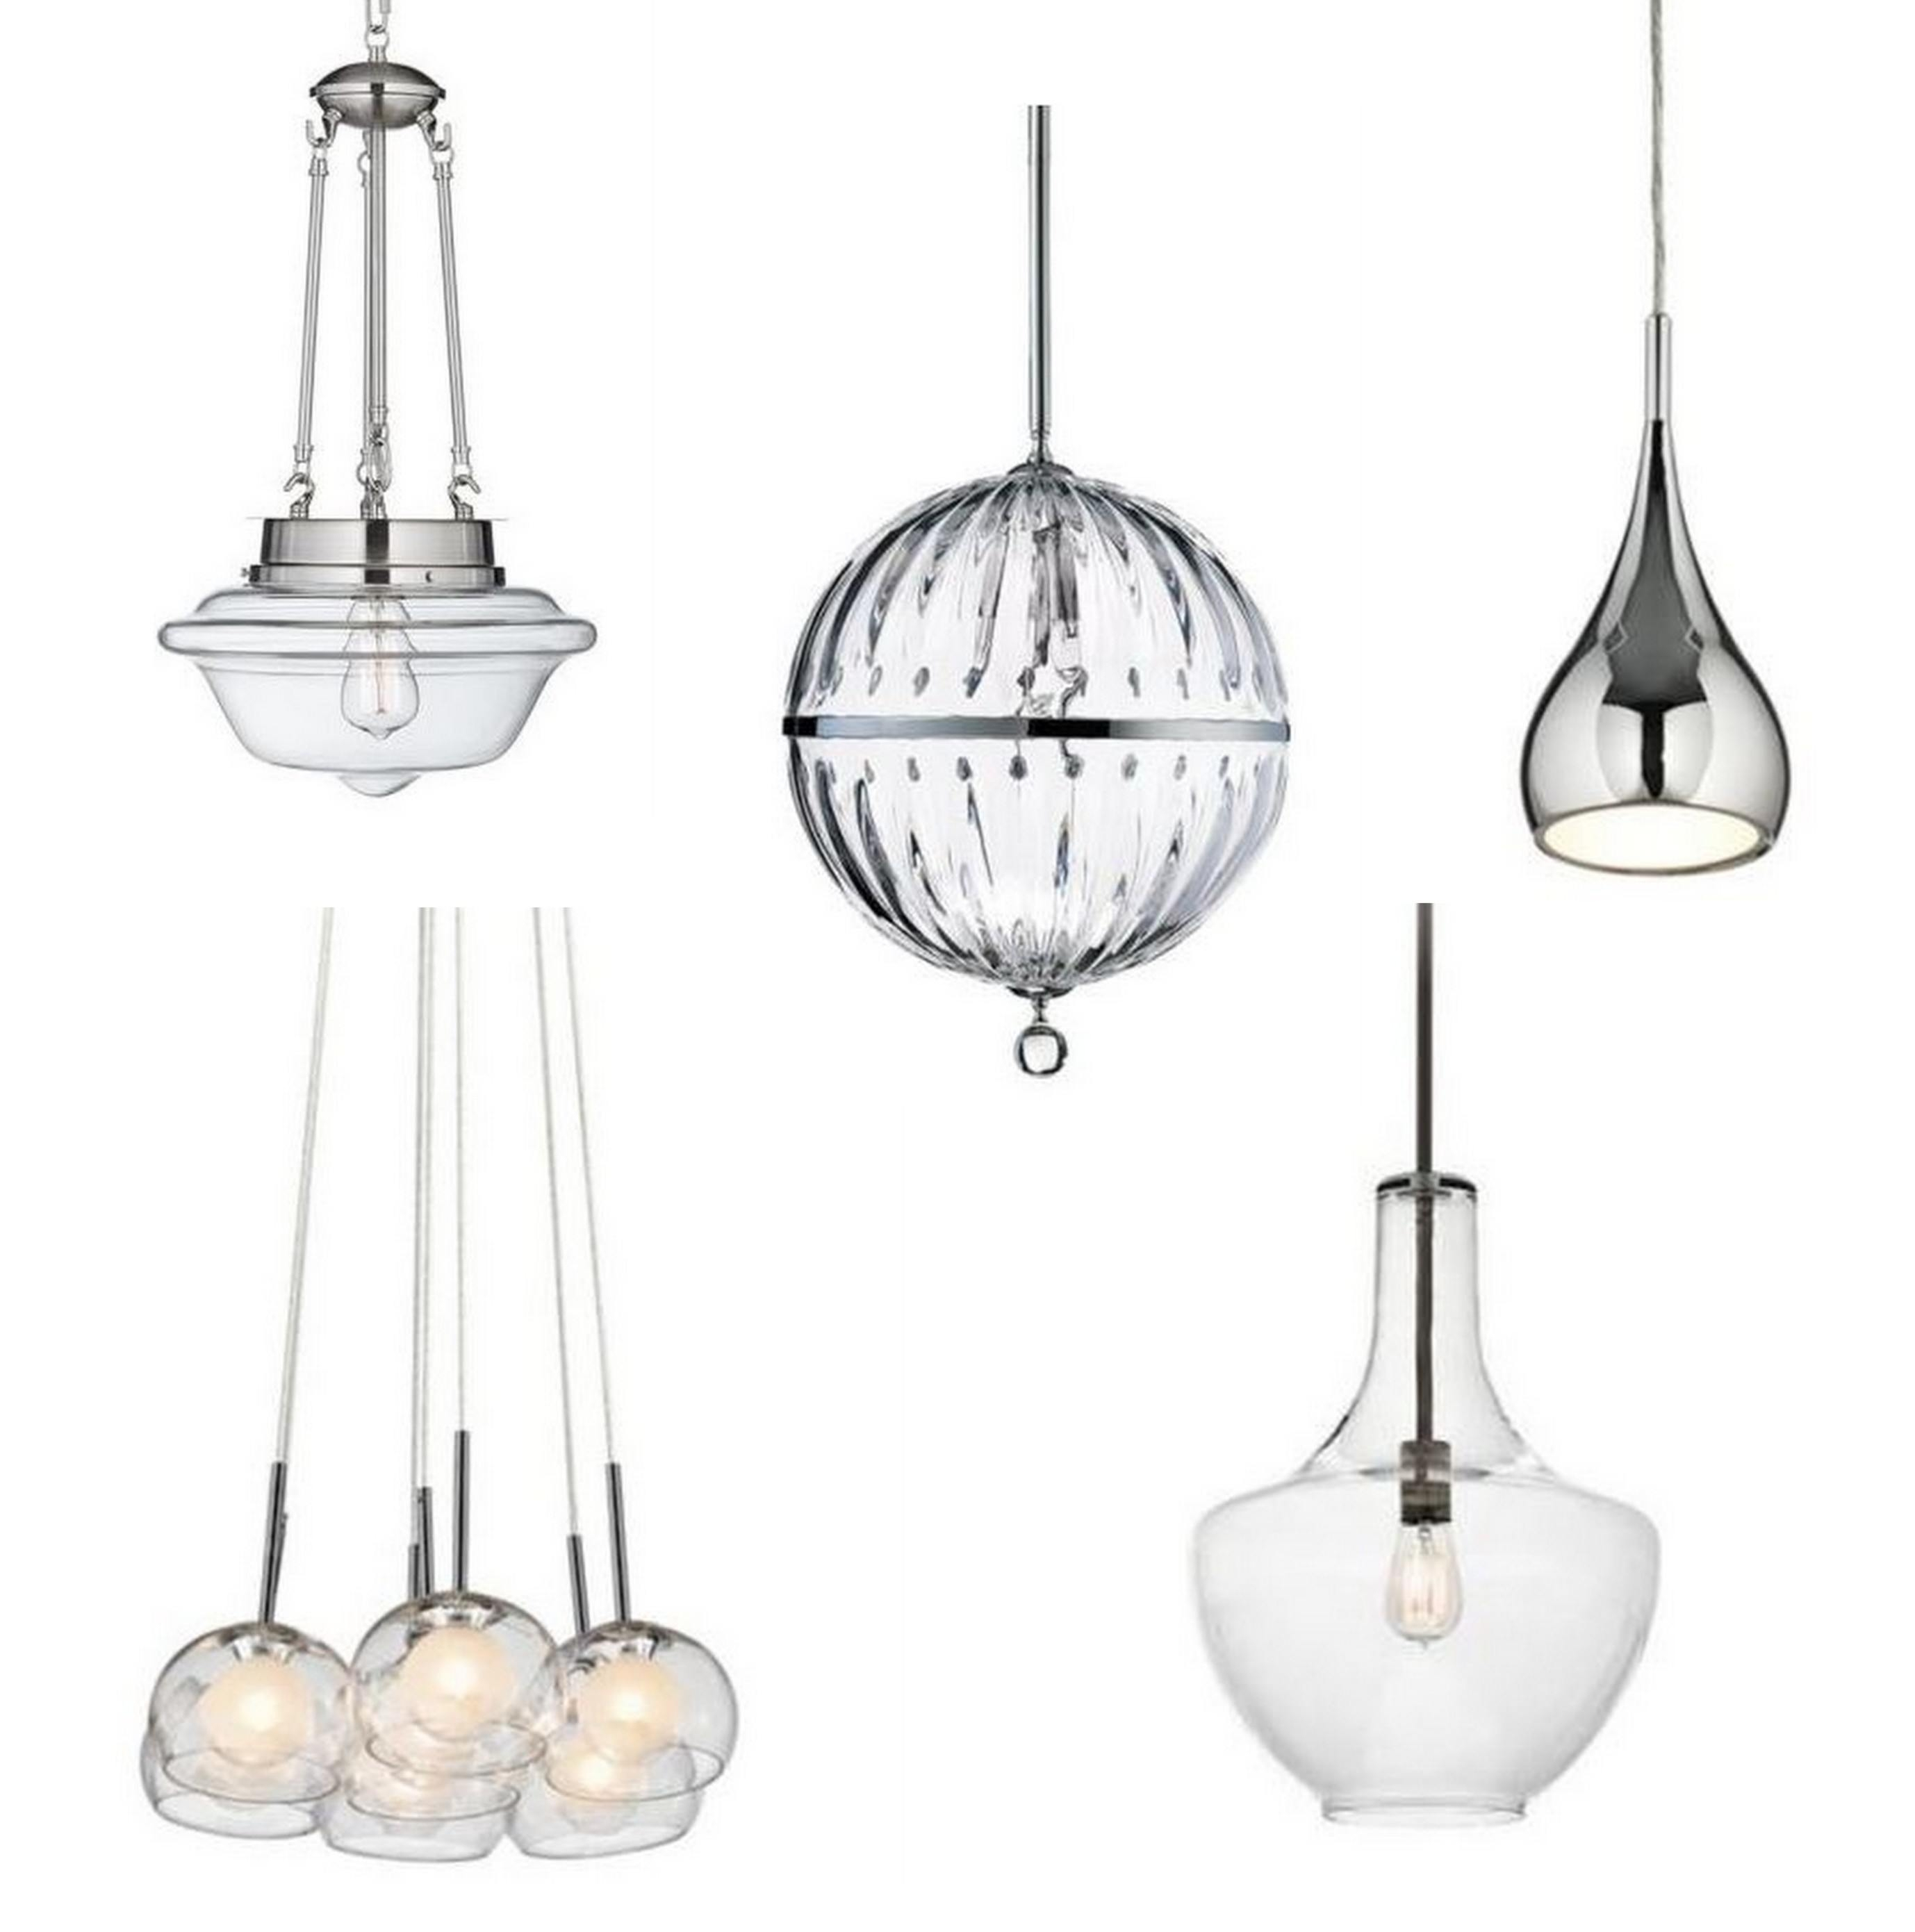 59 Great Astounding Amazing Cluster Glass Pendant Light Fixture On Intended For John Lewis Outdoor Ceiling Lights (View 1 of 15)